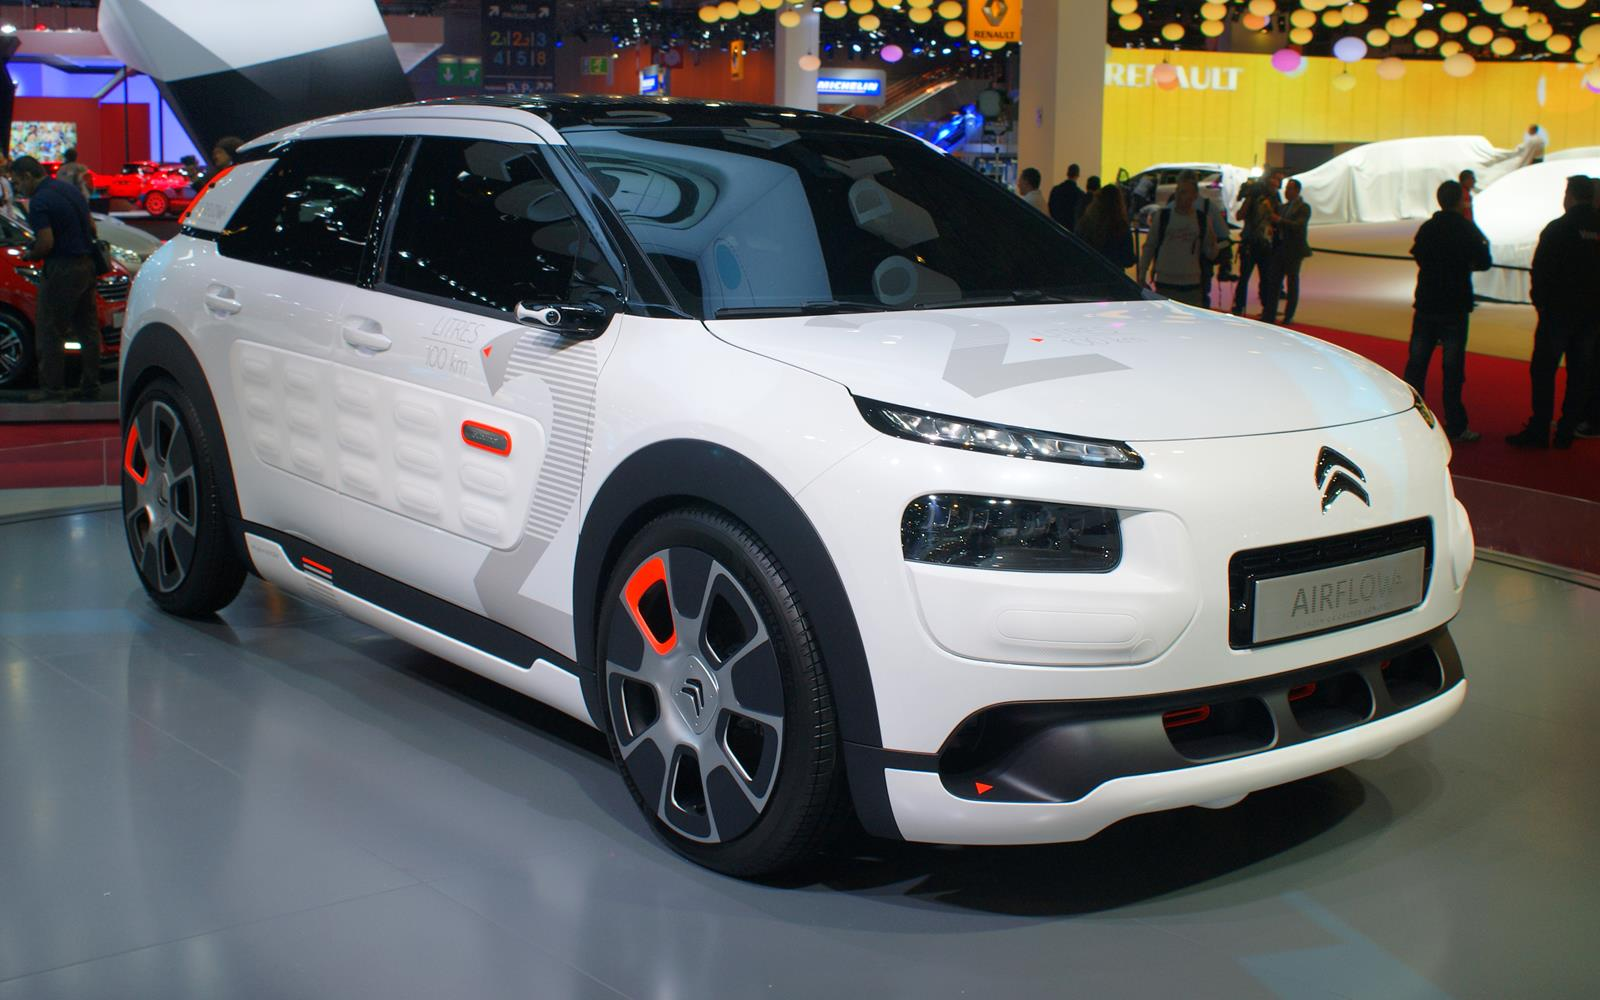 Paris Motor Show 2014 Citroen Cactus AIRFLOW 2L FrontSeatDriver.co.uk